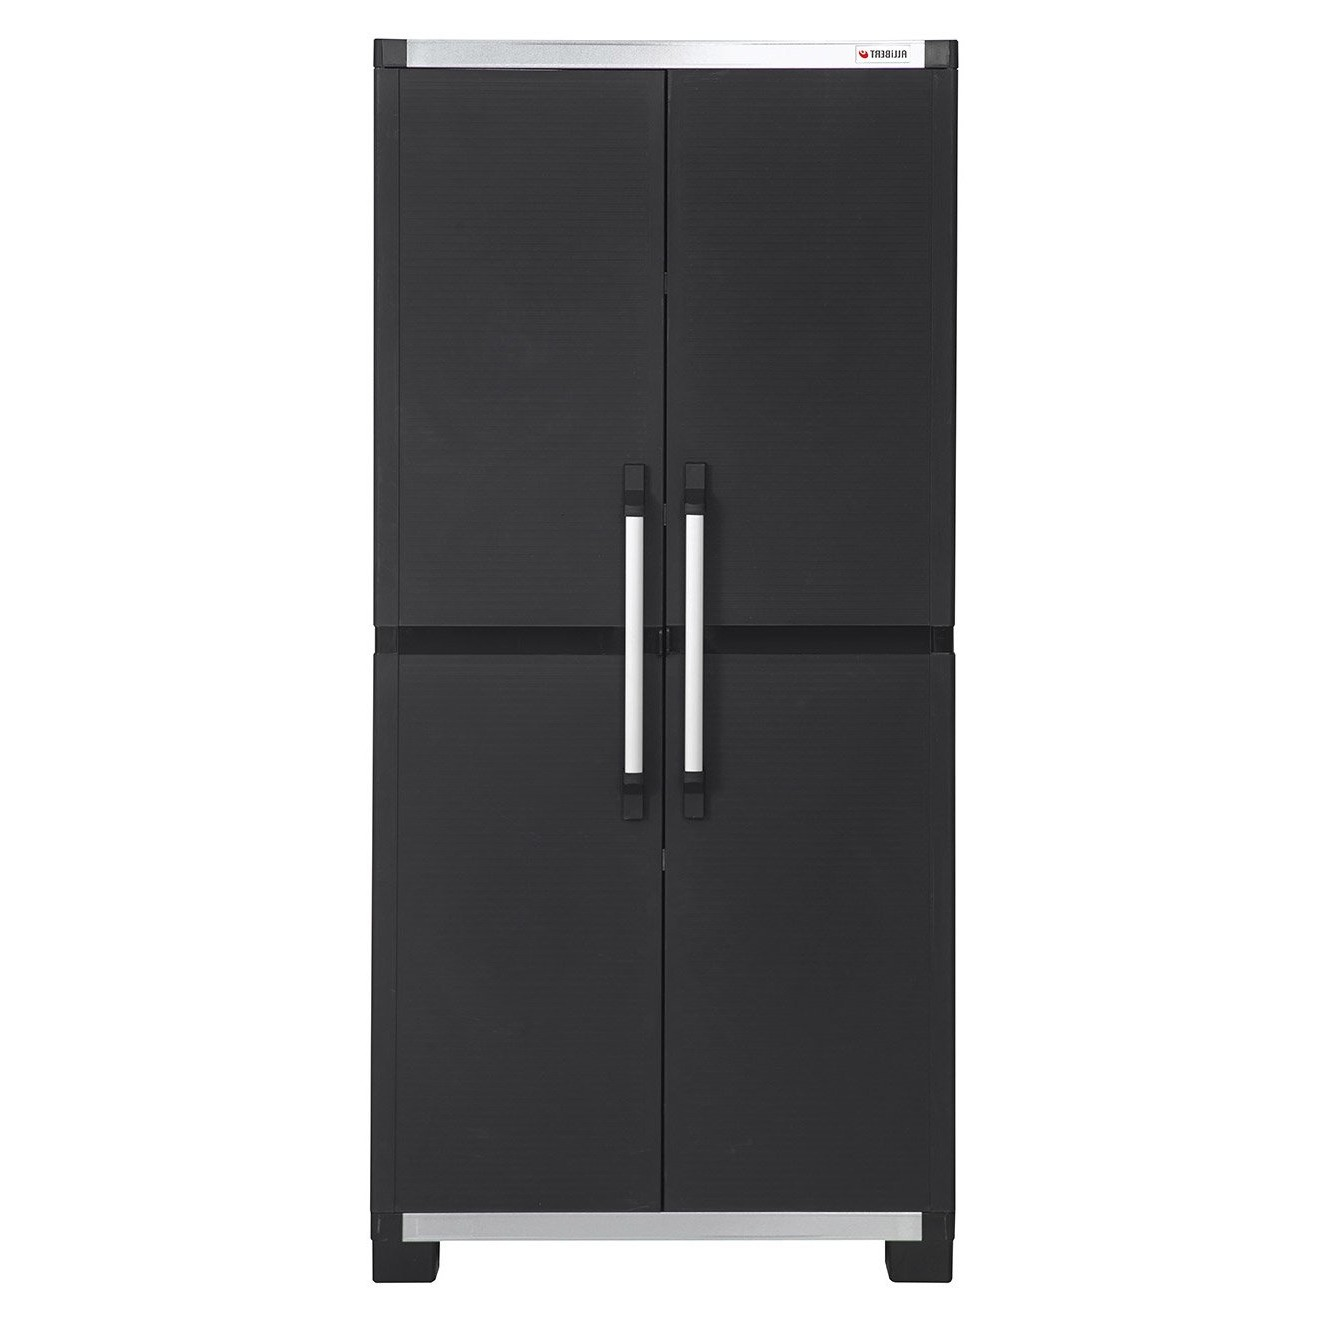 armoire designe armoire rangement garage ikea dernier cabinet id es pour la maison moderne. Black Bedroom Furniture Sets. Home Design Ideas